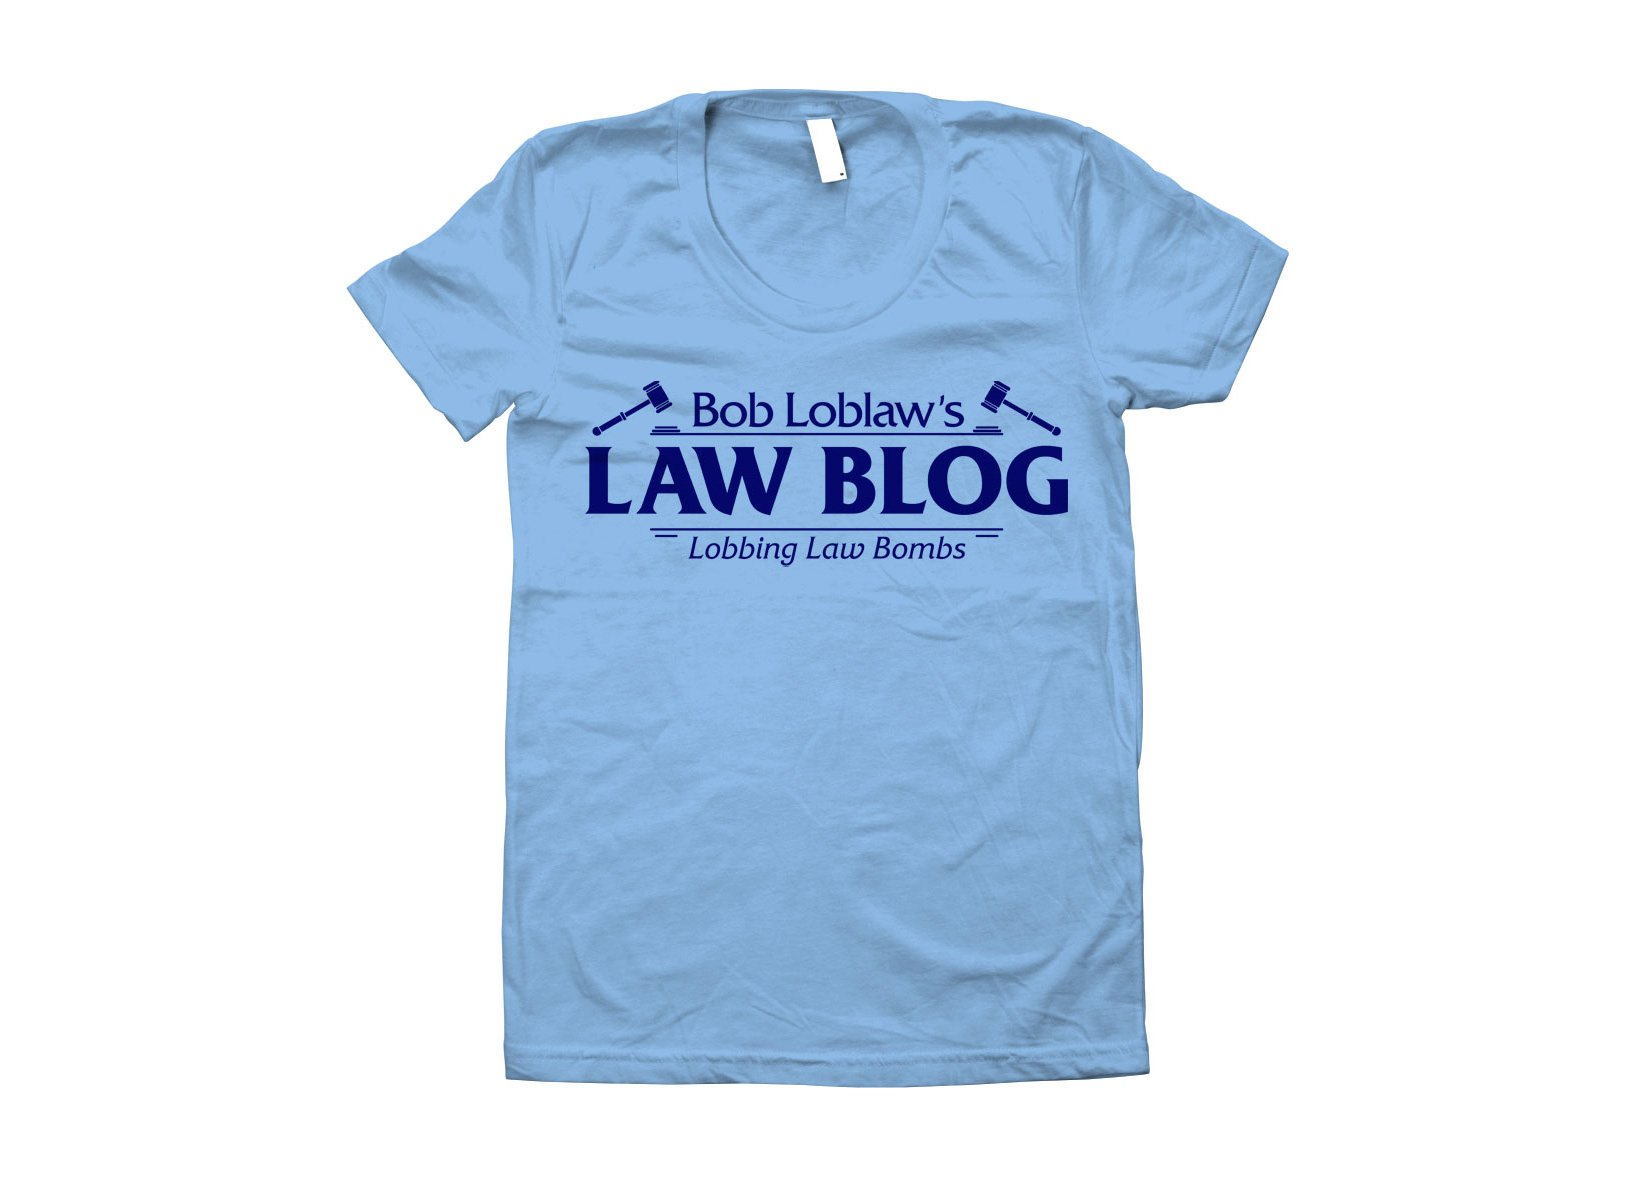 Bob Loblaw's Law Blog on Juniors T-Shirt